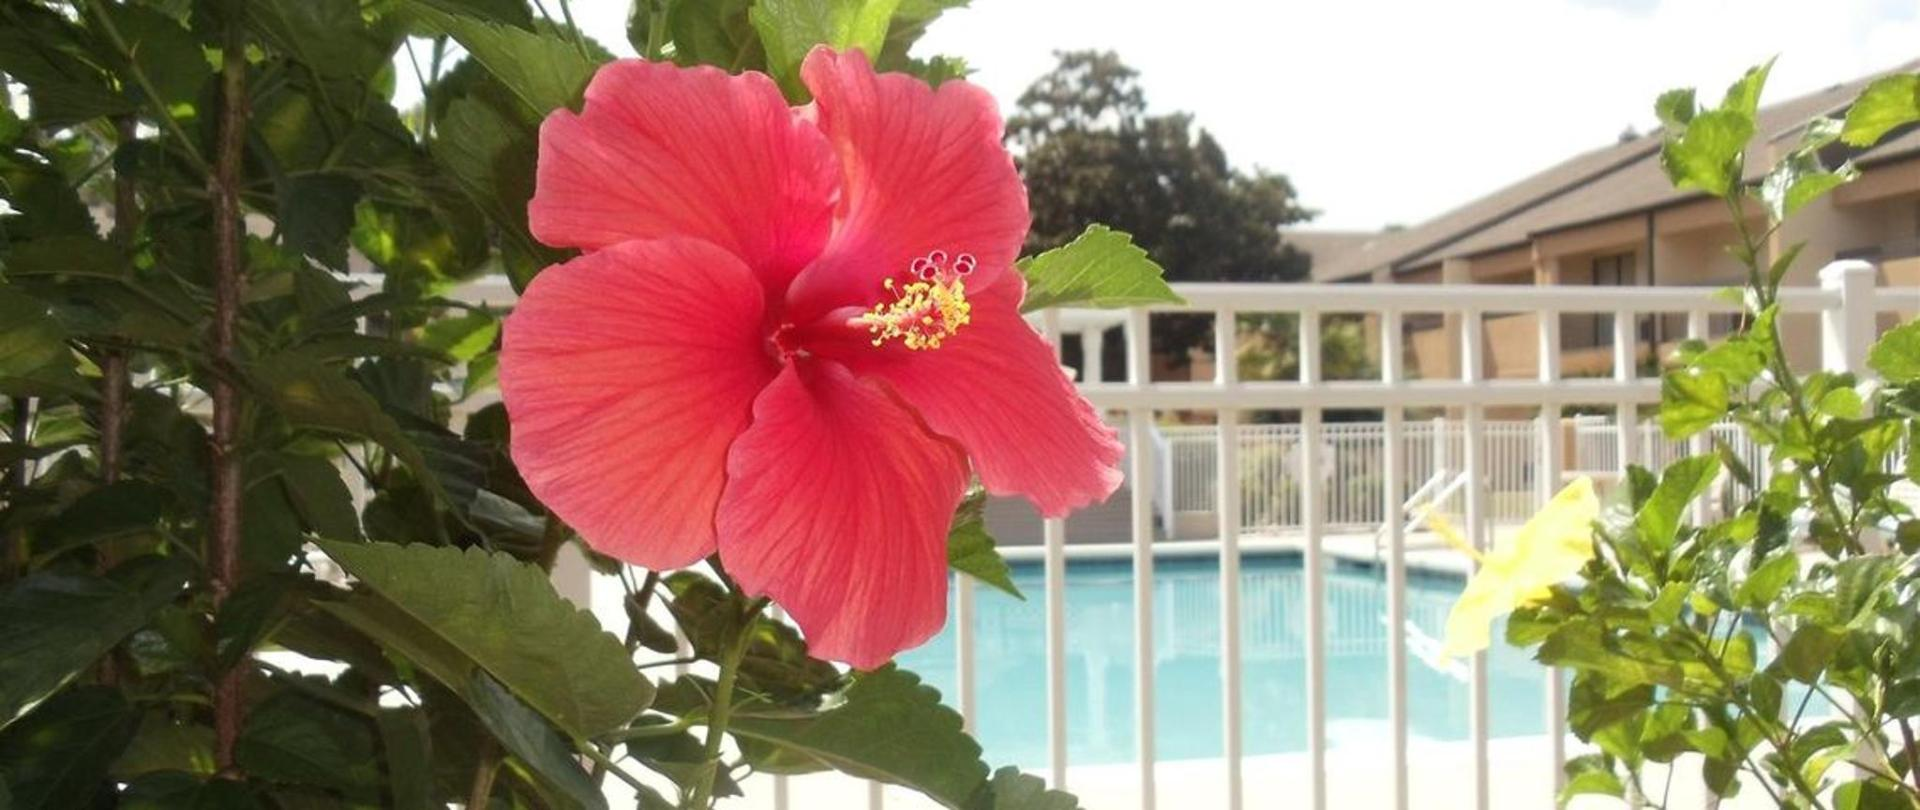 pool-flower-up-close.JPG.1140x481_0_171_5937.JPG